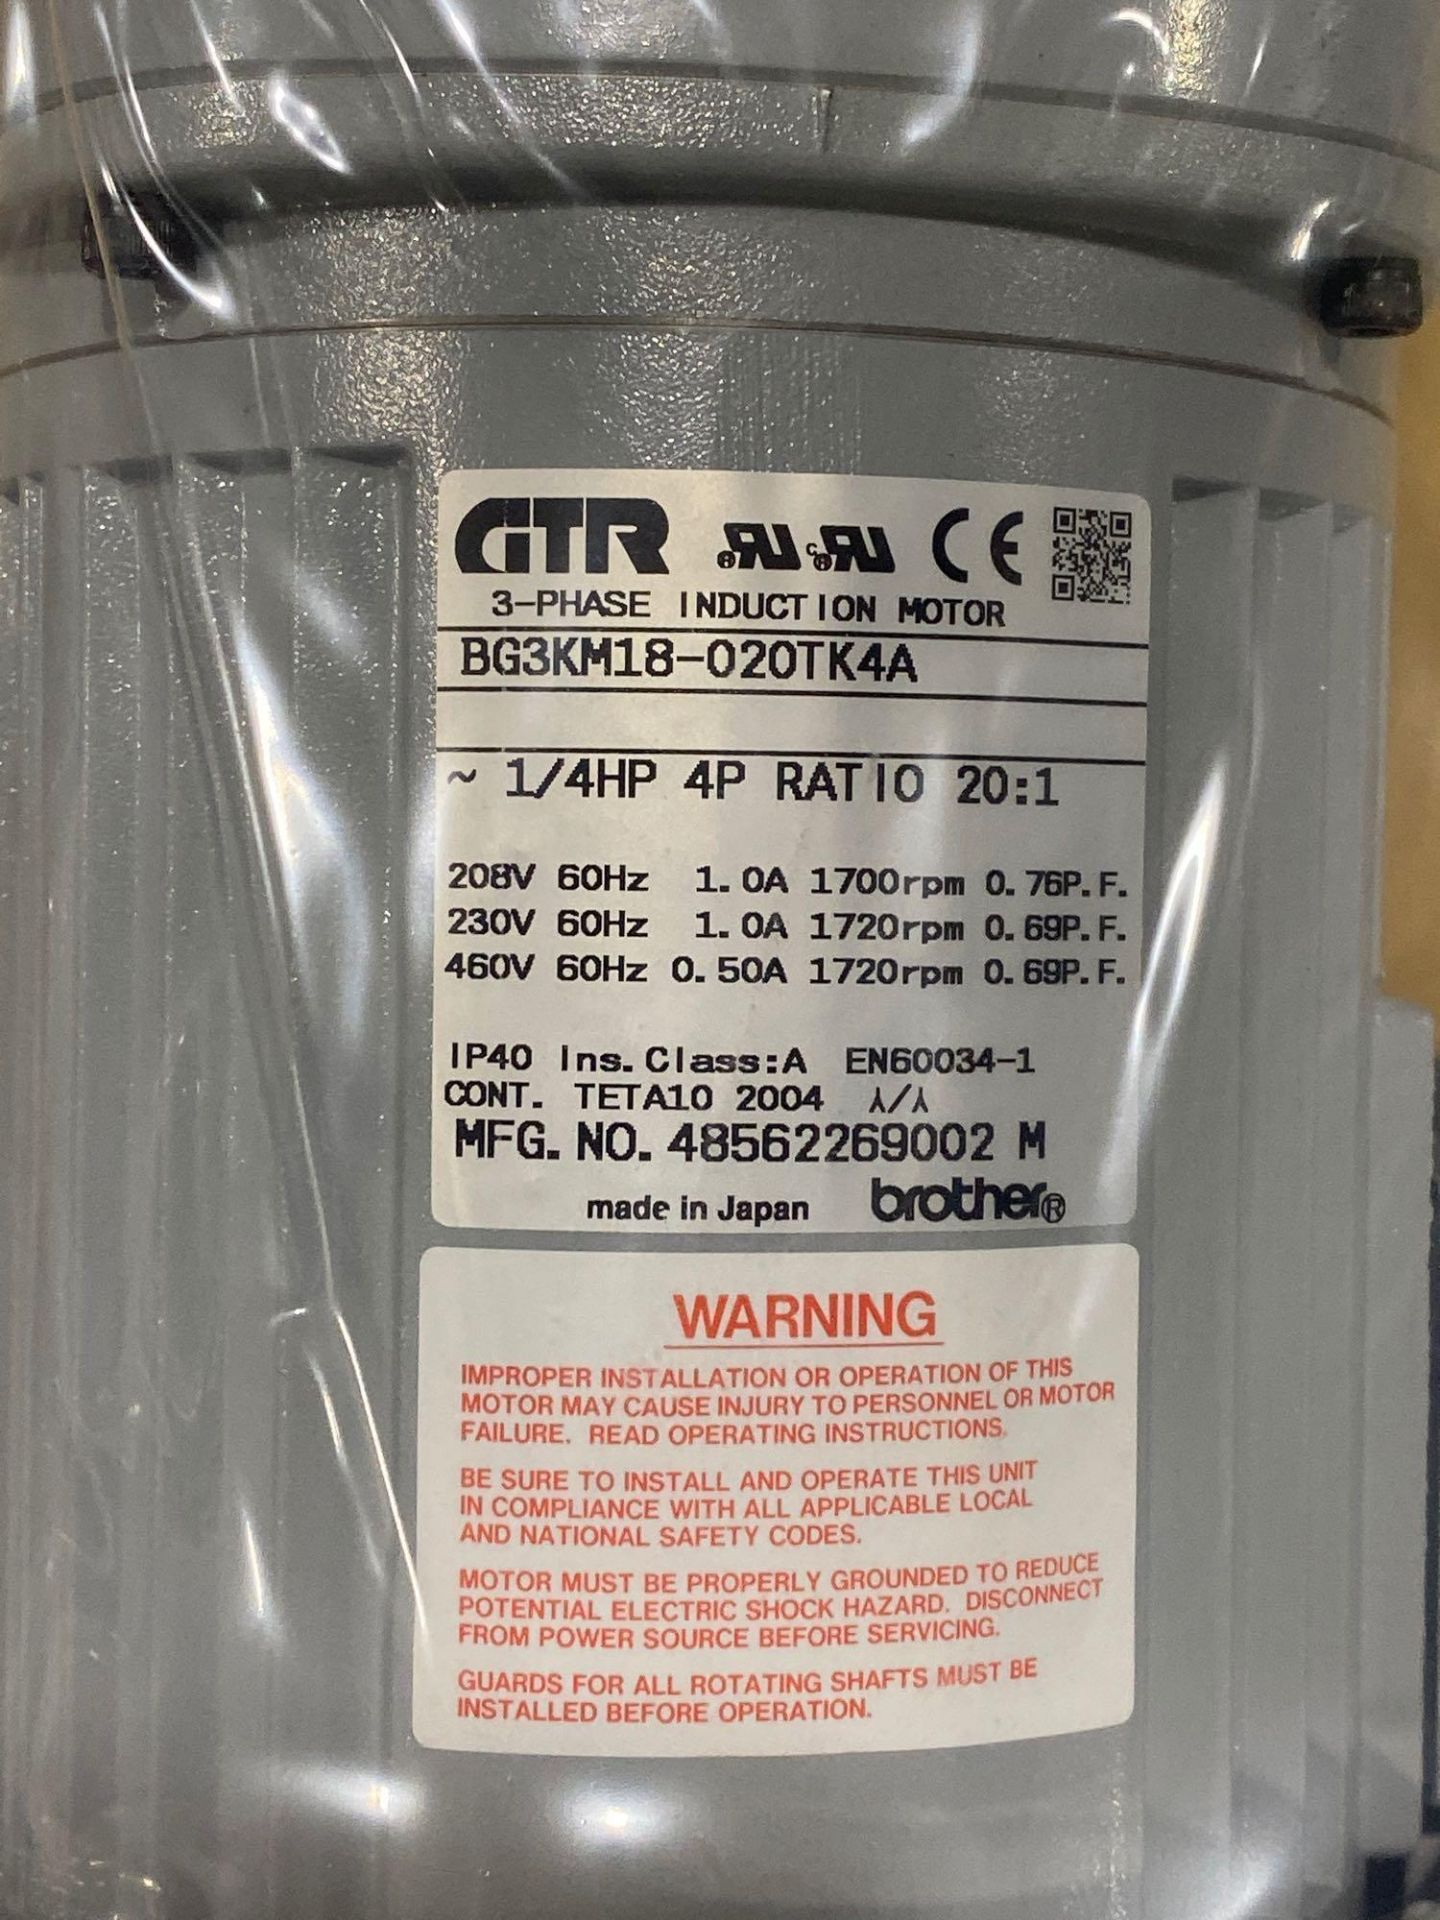 Lot 6 - Brother 3-phase induction motor model BG3KM18-020TK4A. New in box.